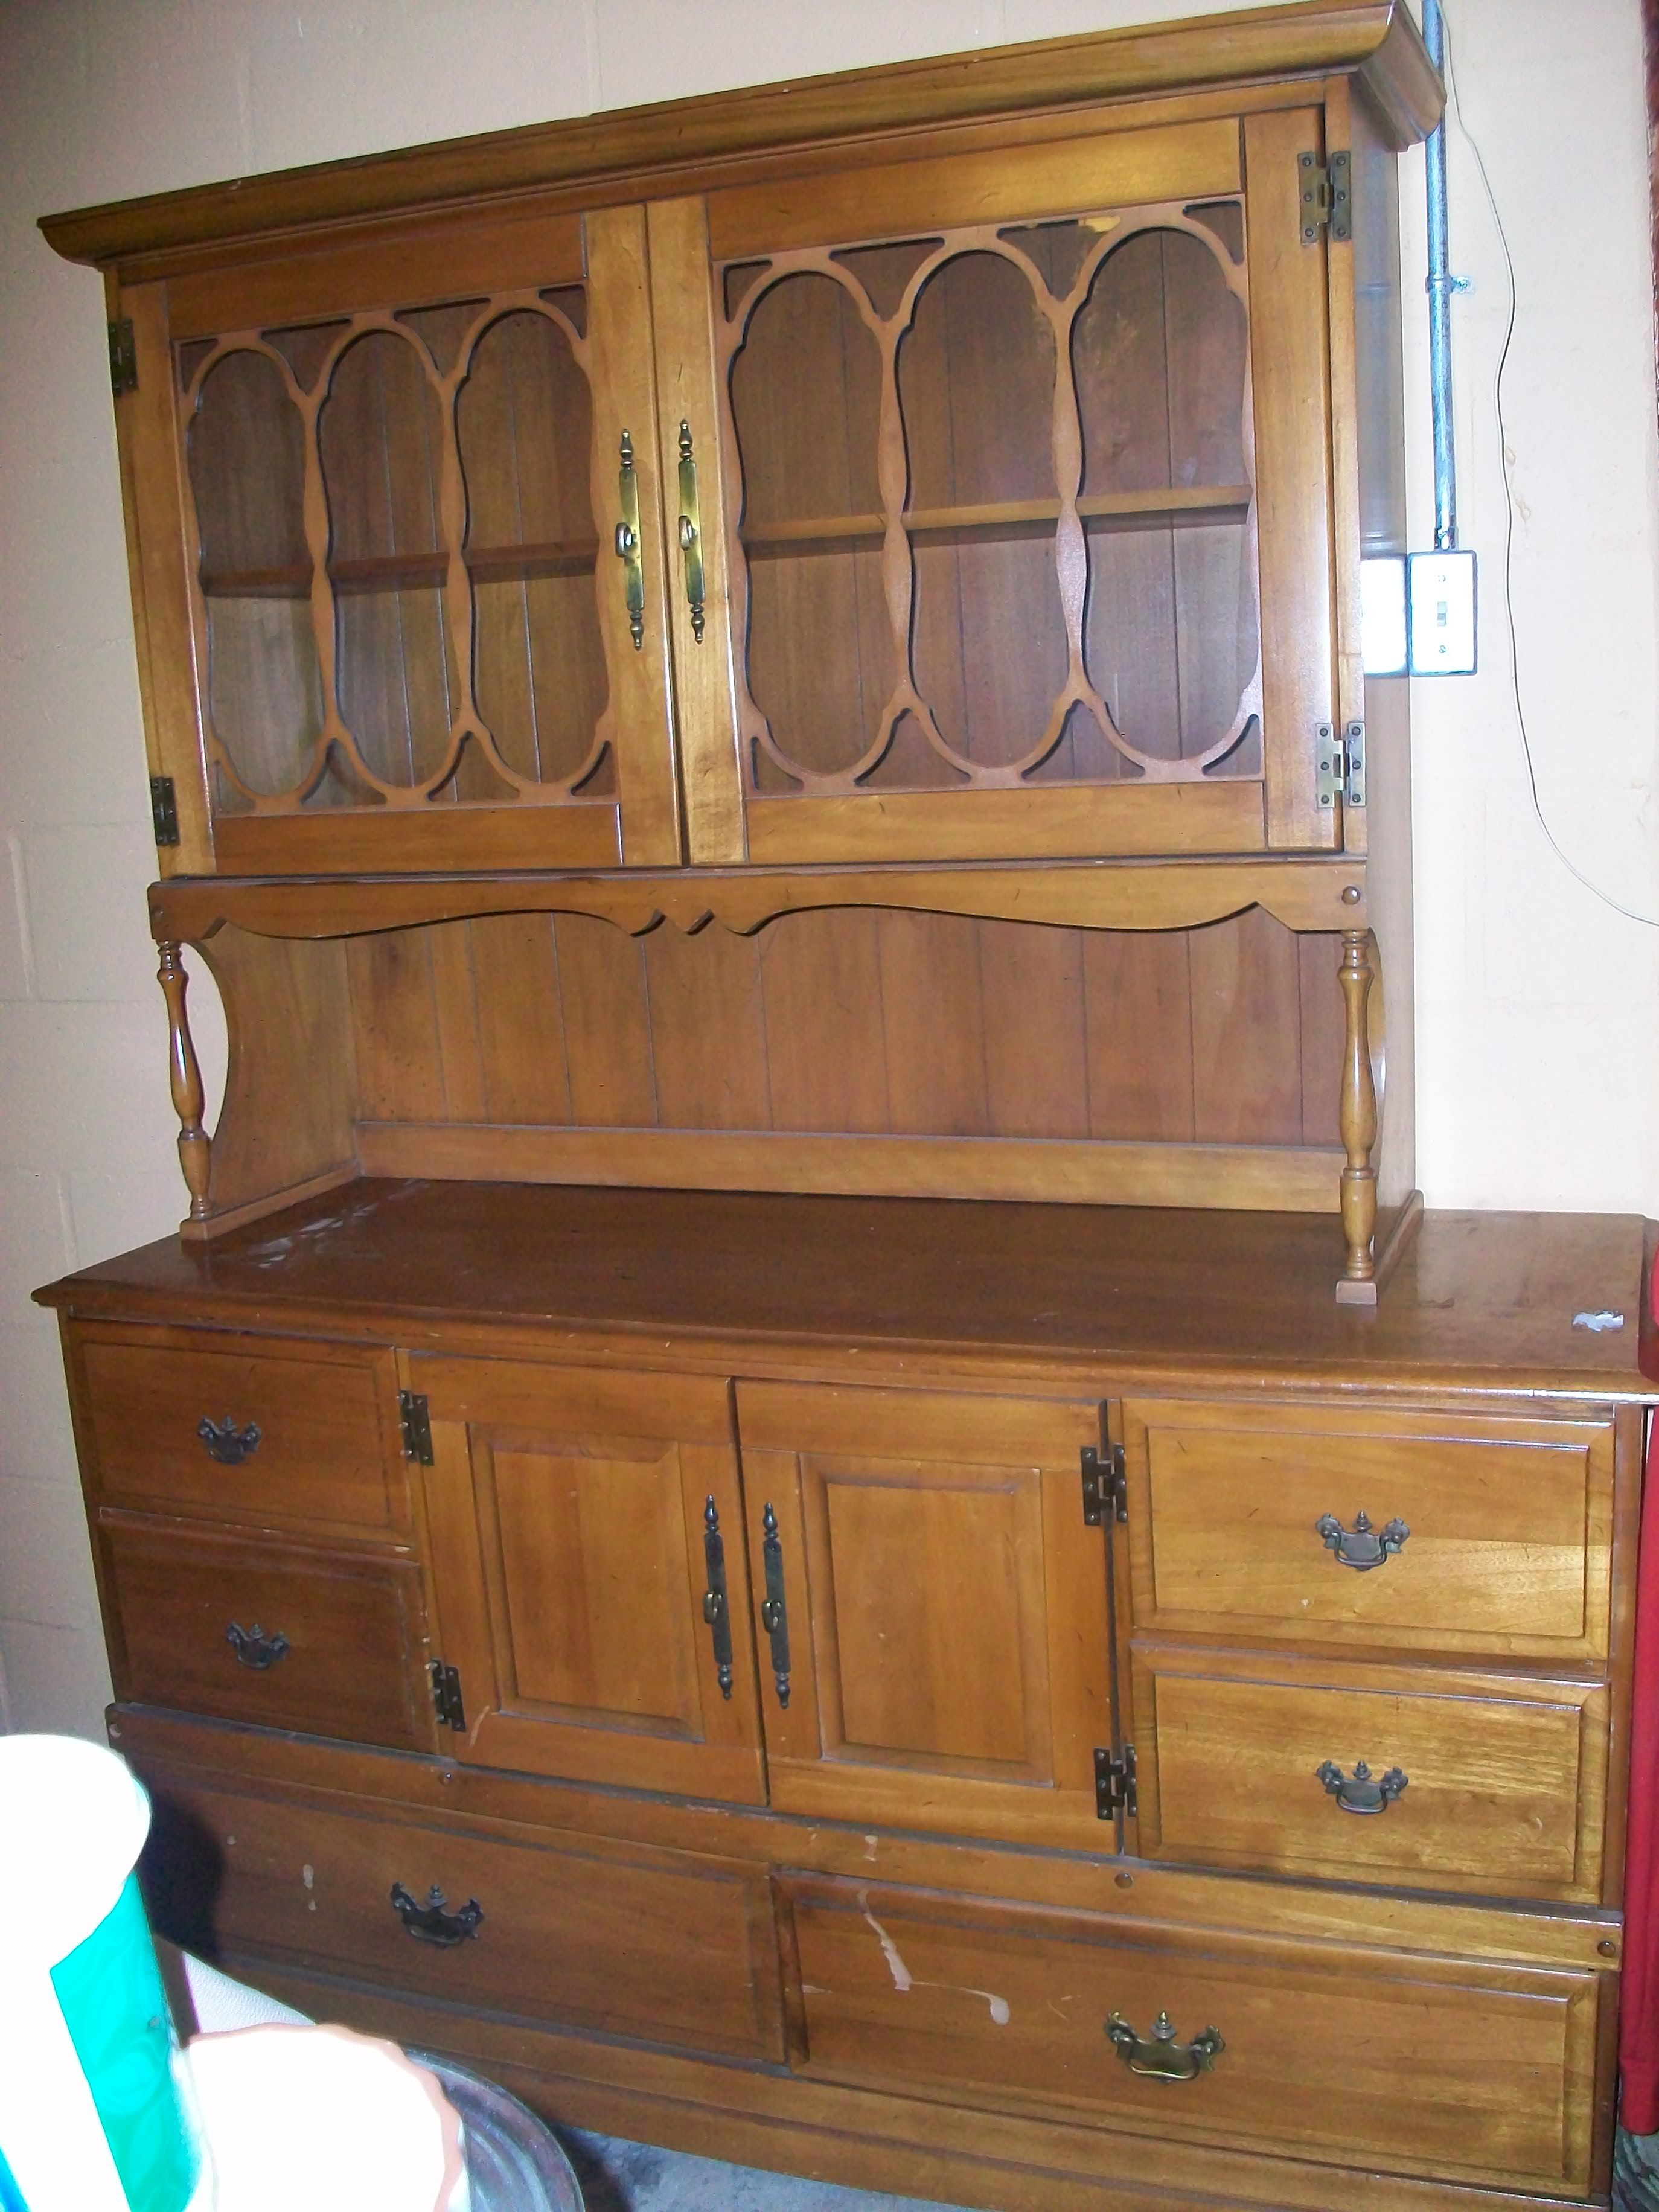 Ann mirror insert double door single drawer wooden corner cabinet - Great Maple China Hutch Has 6 Drawers 1 Lg Cabinet And Double Glass Doors